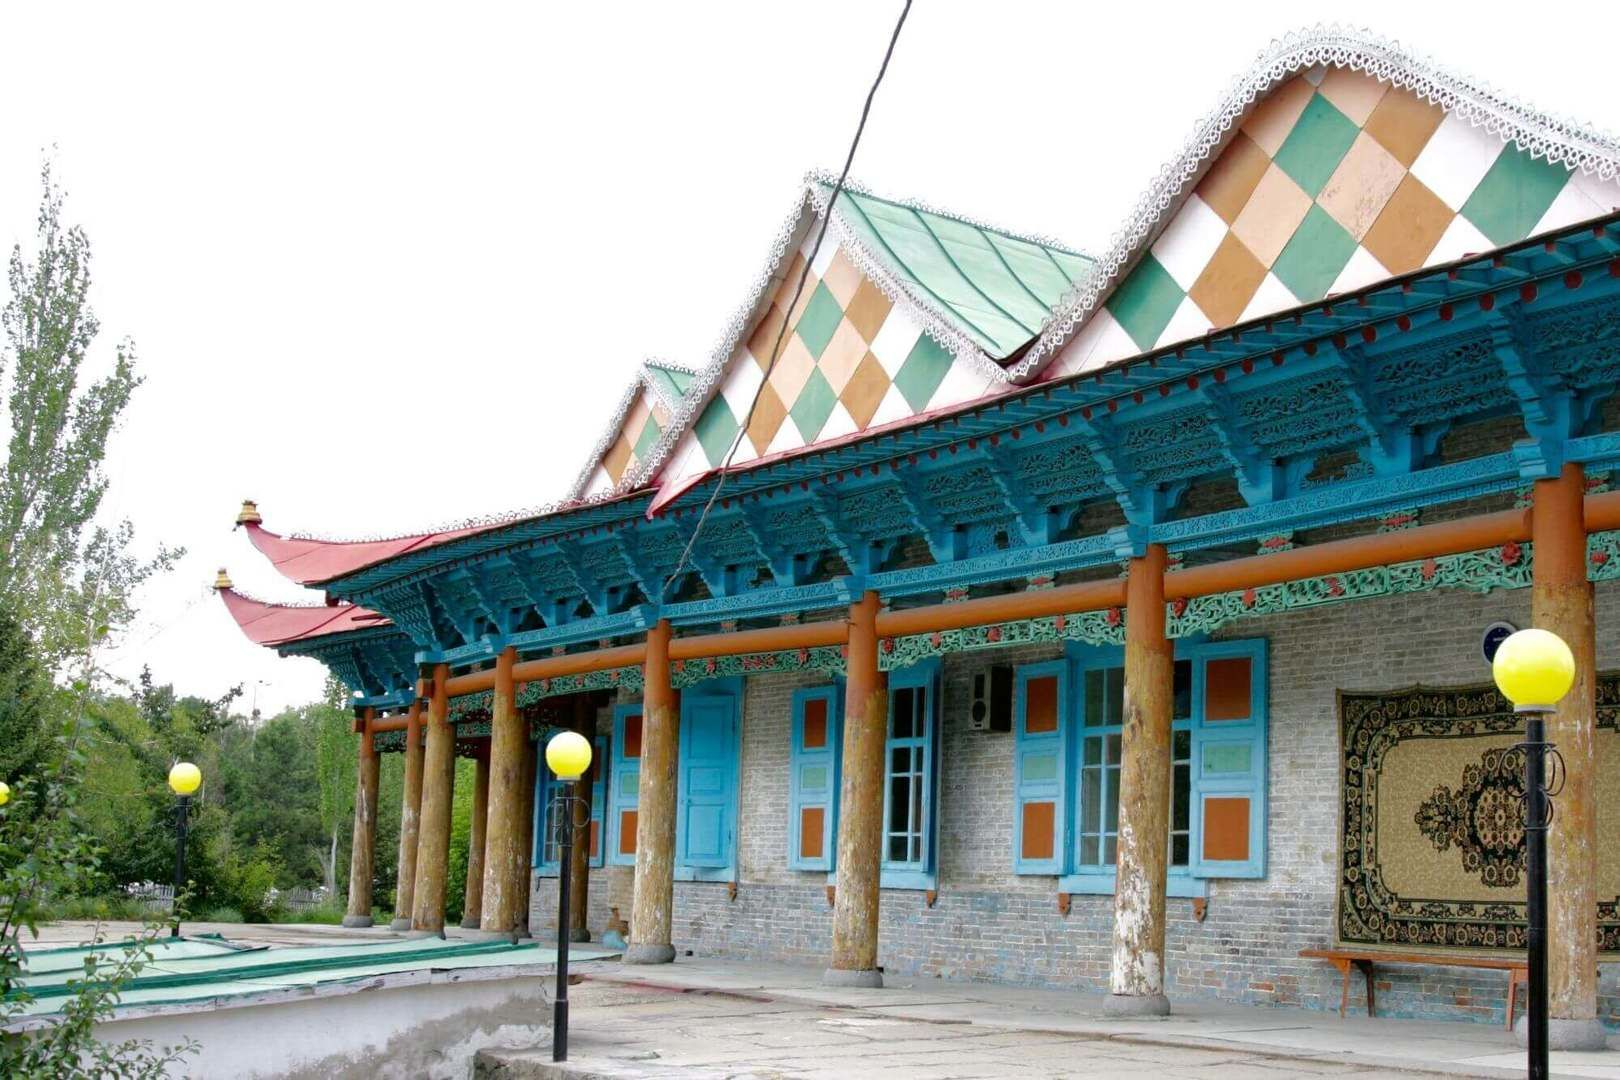 Wooden Dungan Mosque in Karakol with colorful and wavy roof